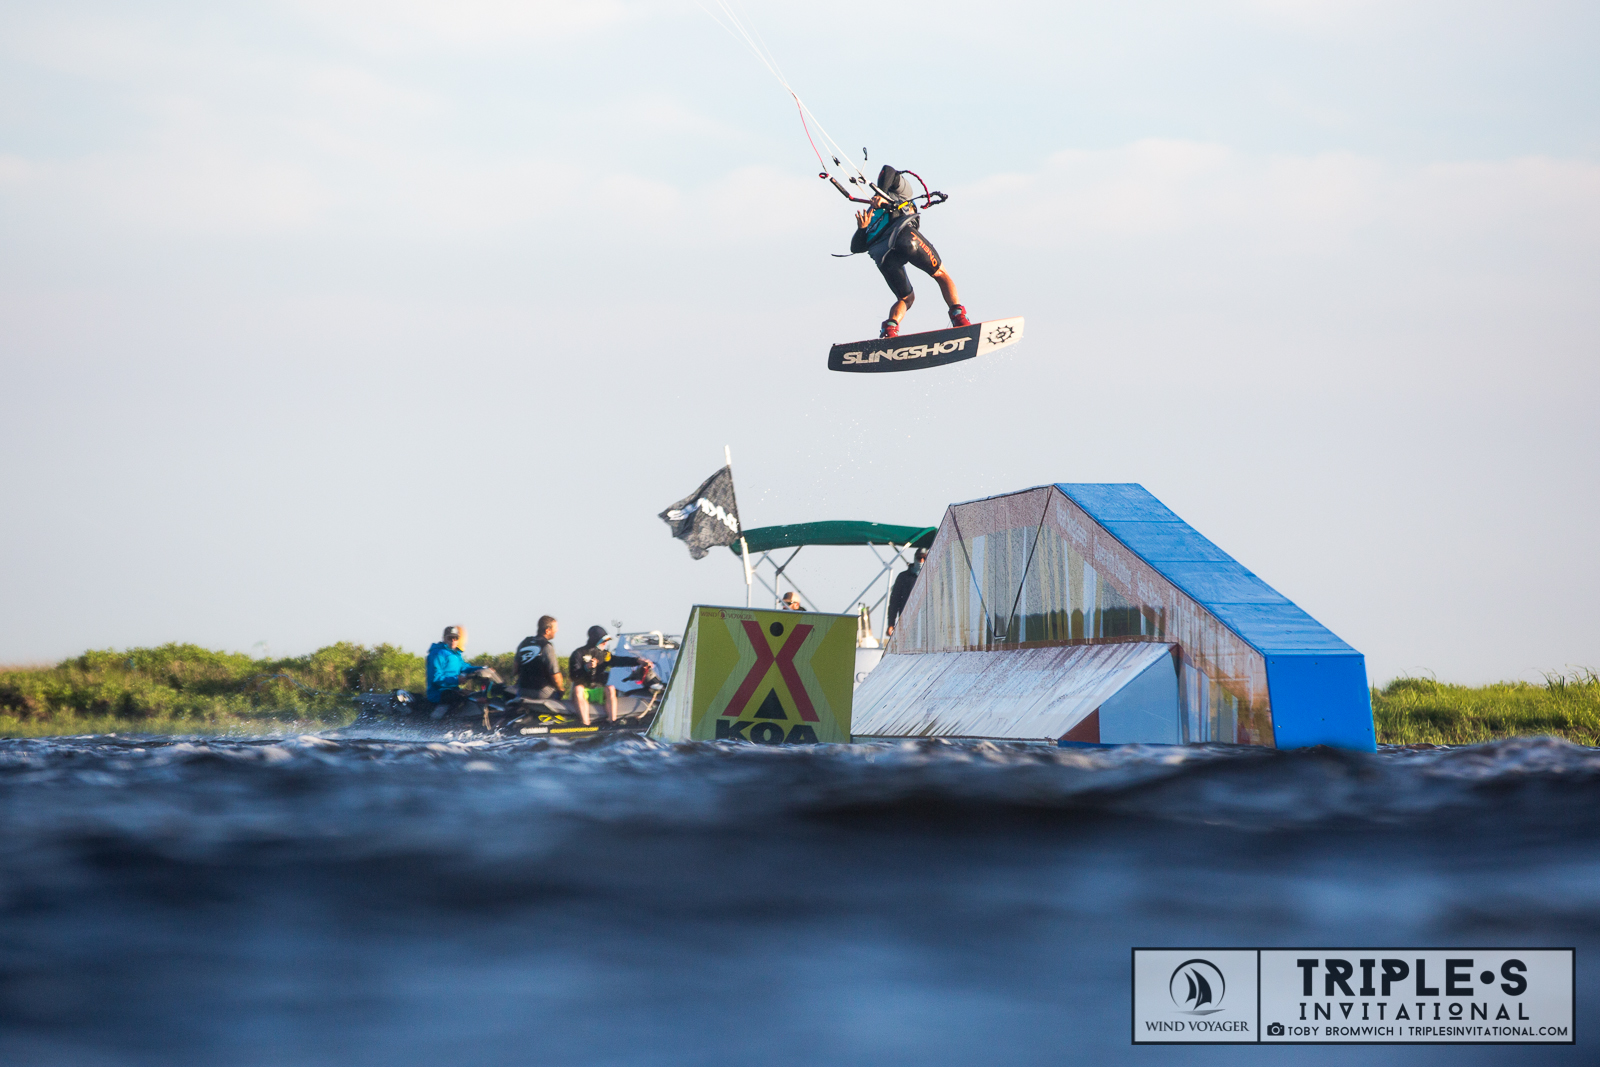 Sam Light Transferring Kicker to a-frame, 2016 Real Kiteboarding Triple S Invititational.